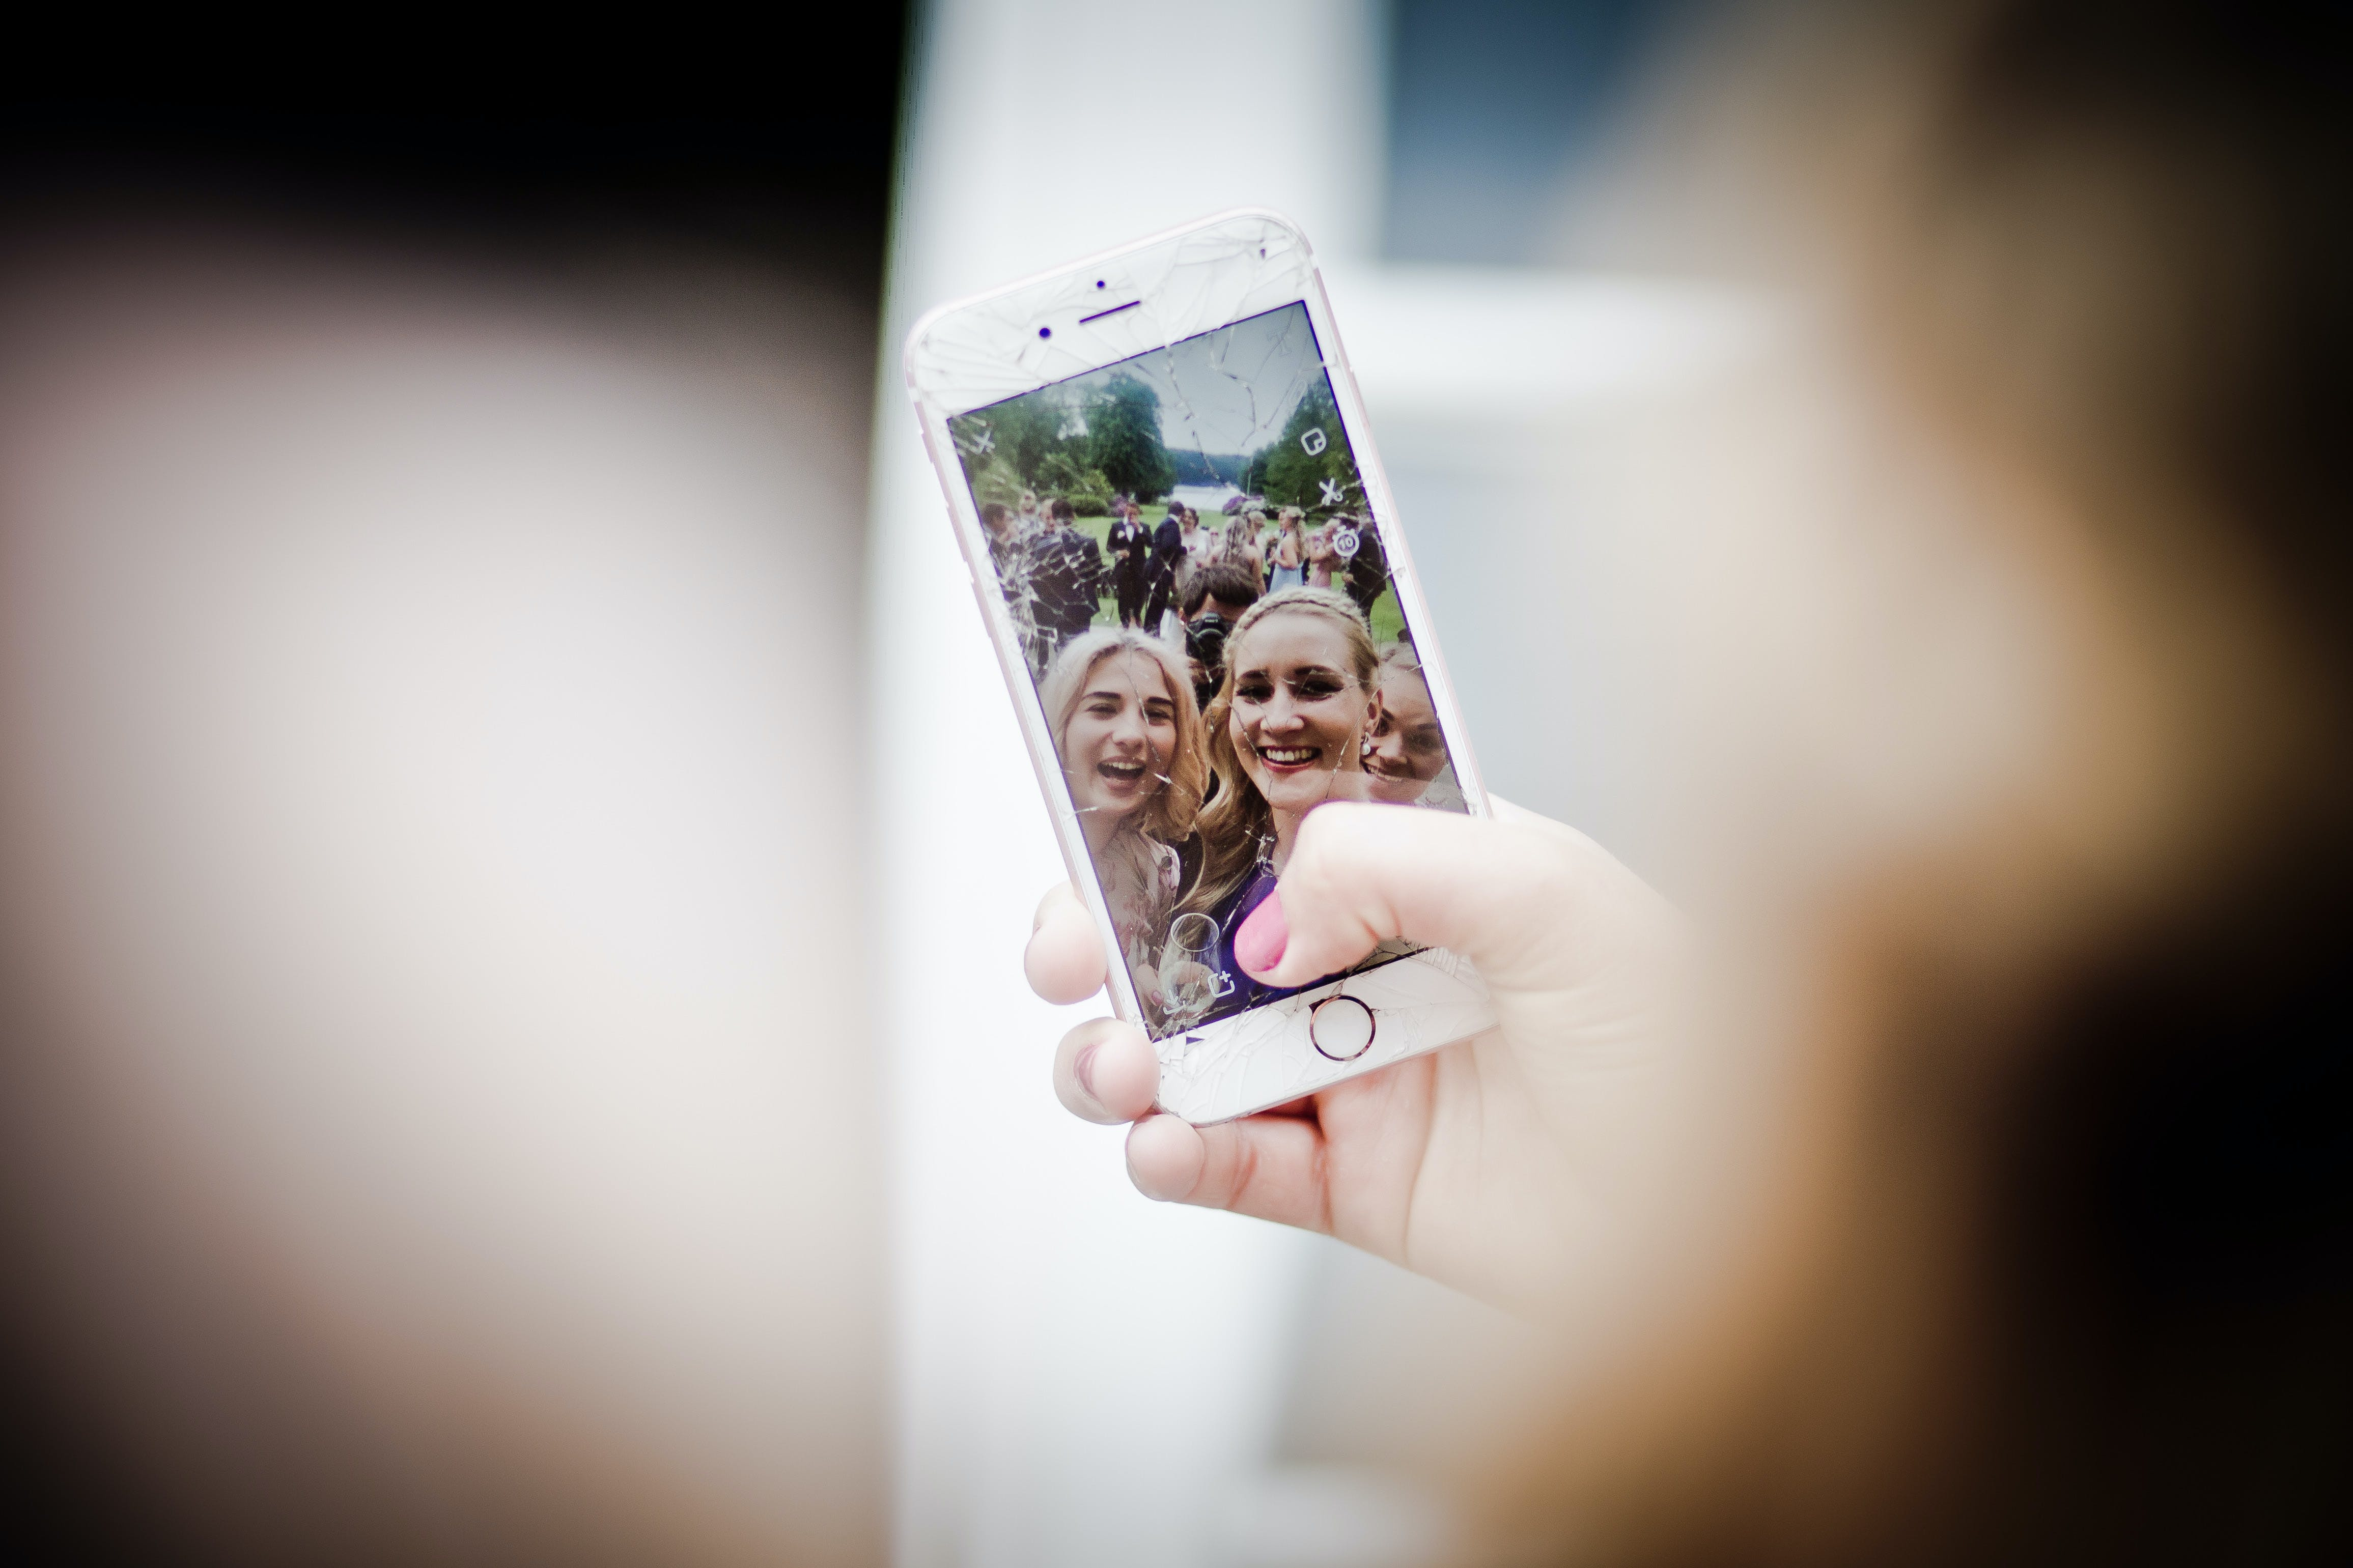 Selective Focus Photo of Gold Iphone 6 Displaying Two Women Taking Selfie